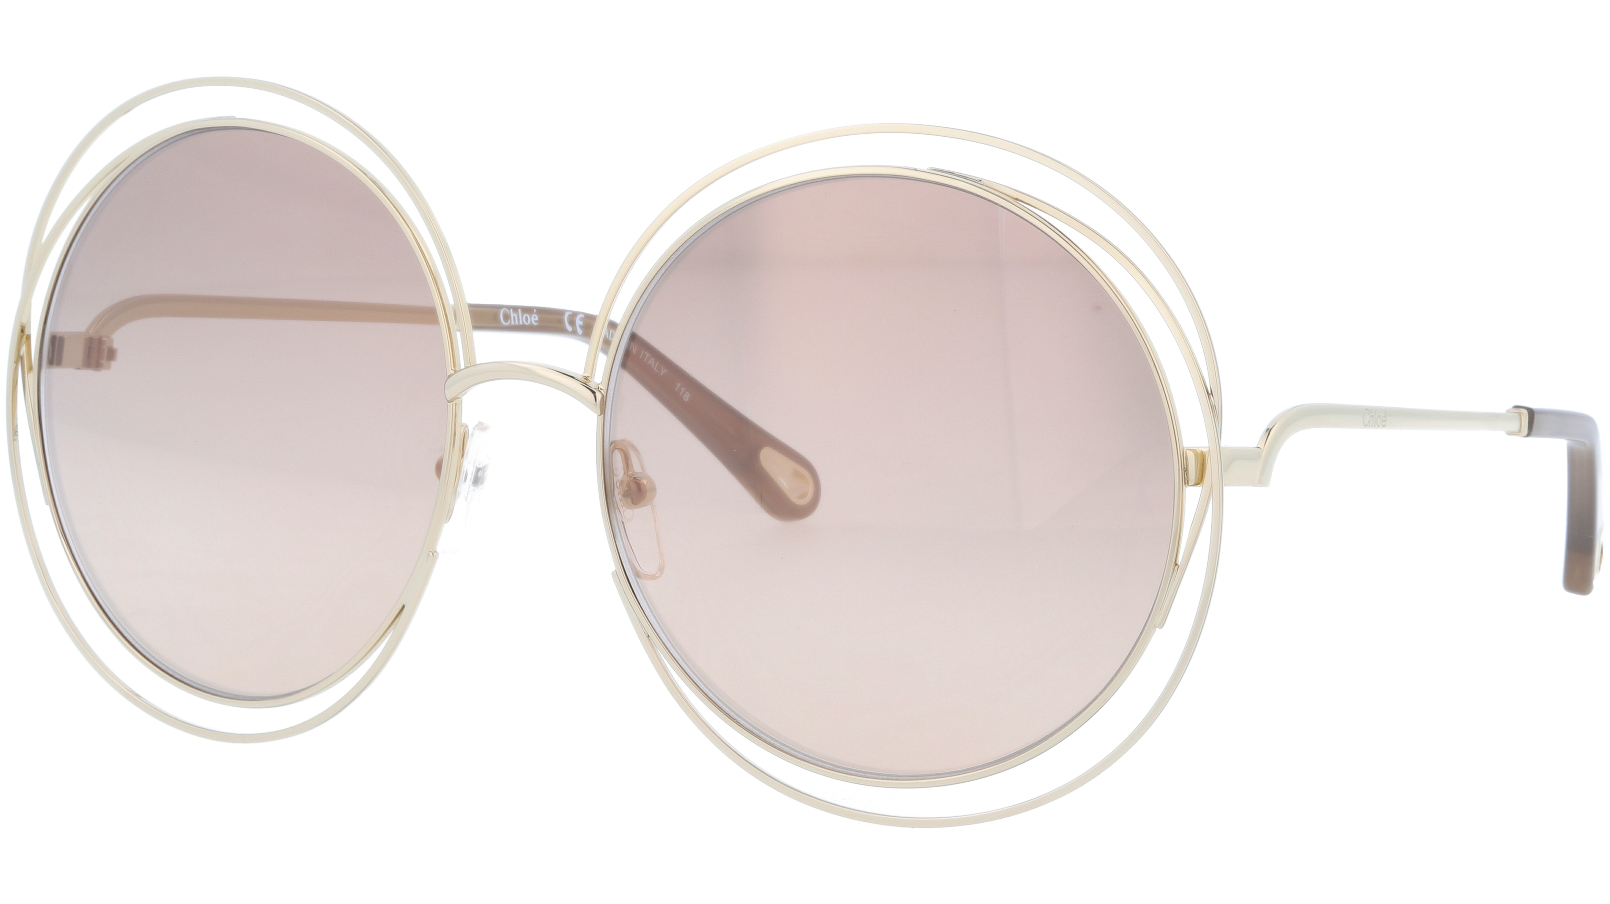 CHLOE CE114SD 784 62 Rose Gold Round Sunglasses